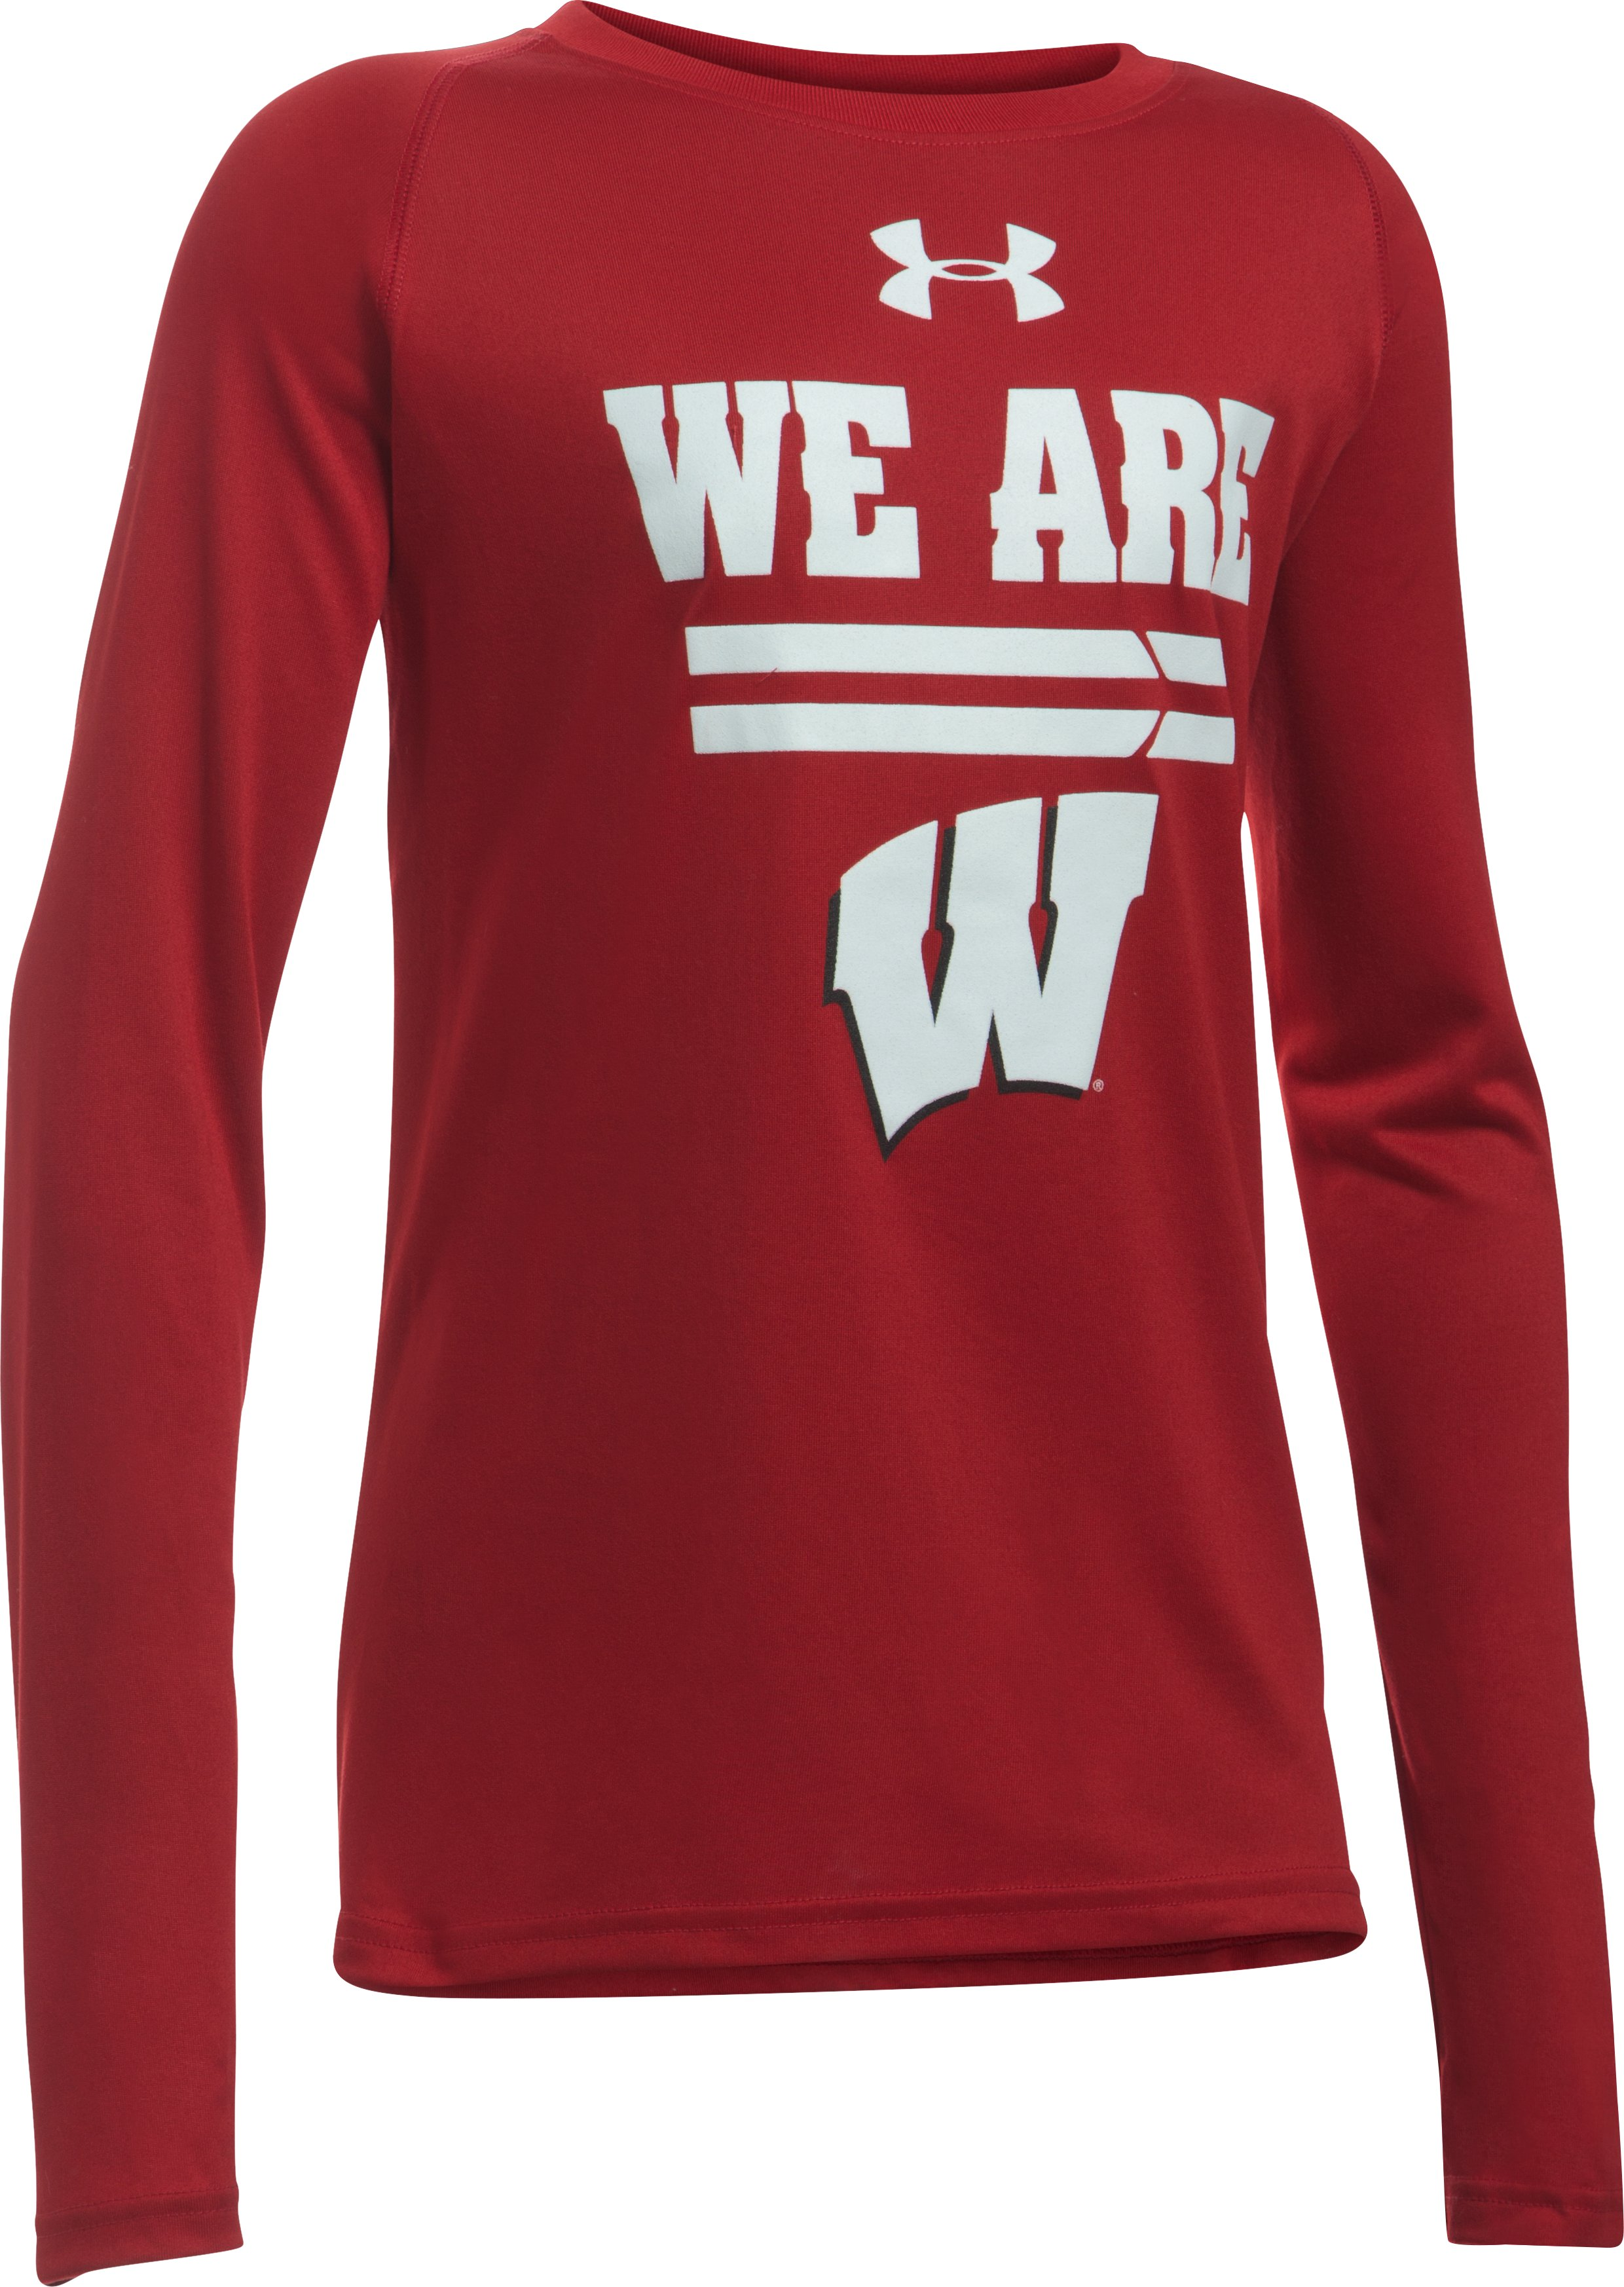 Boys' Wisconsin Long Sleeve T-Shirt, Flawless